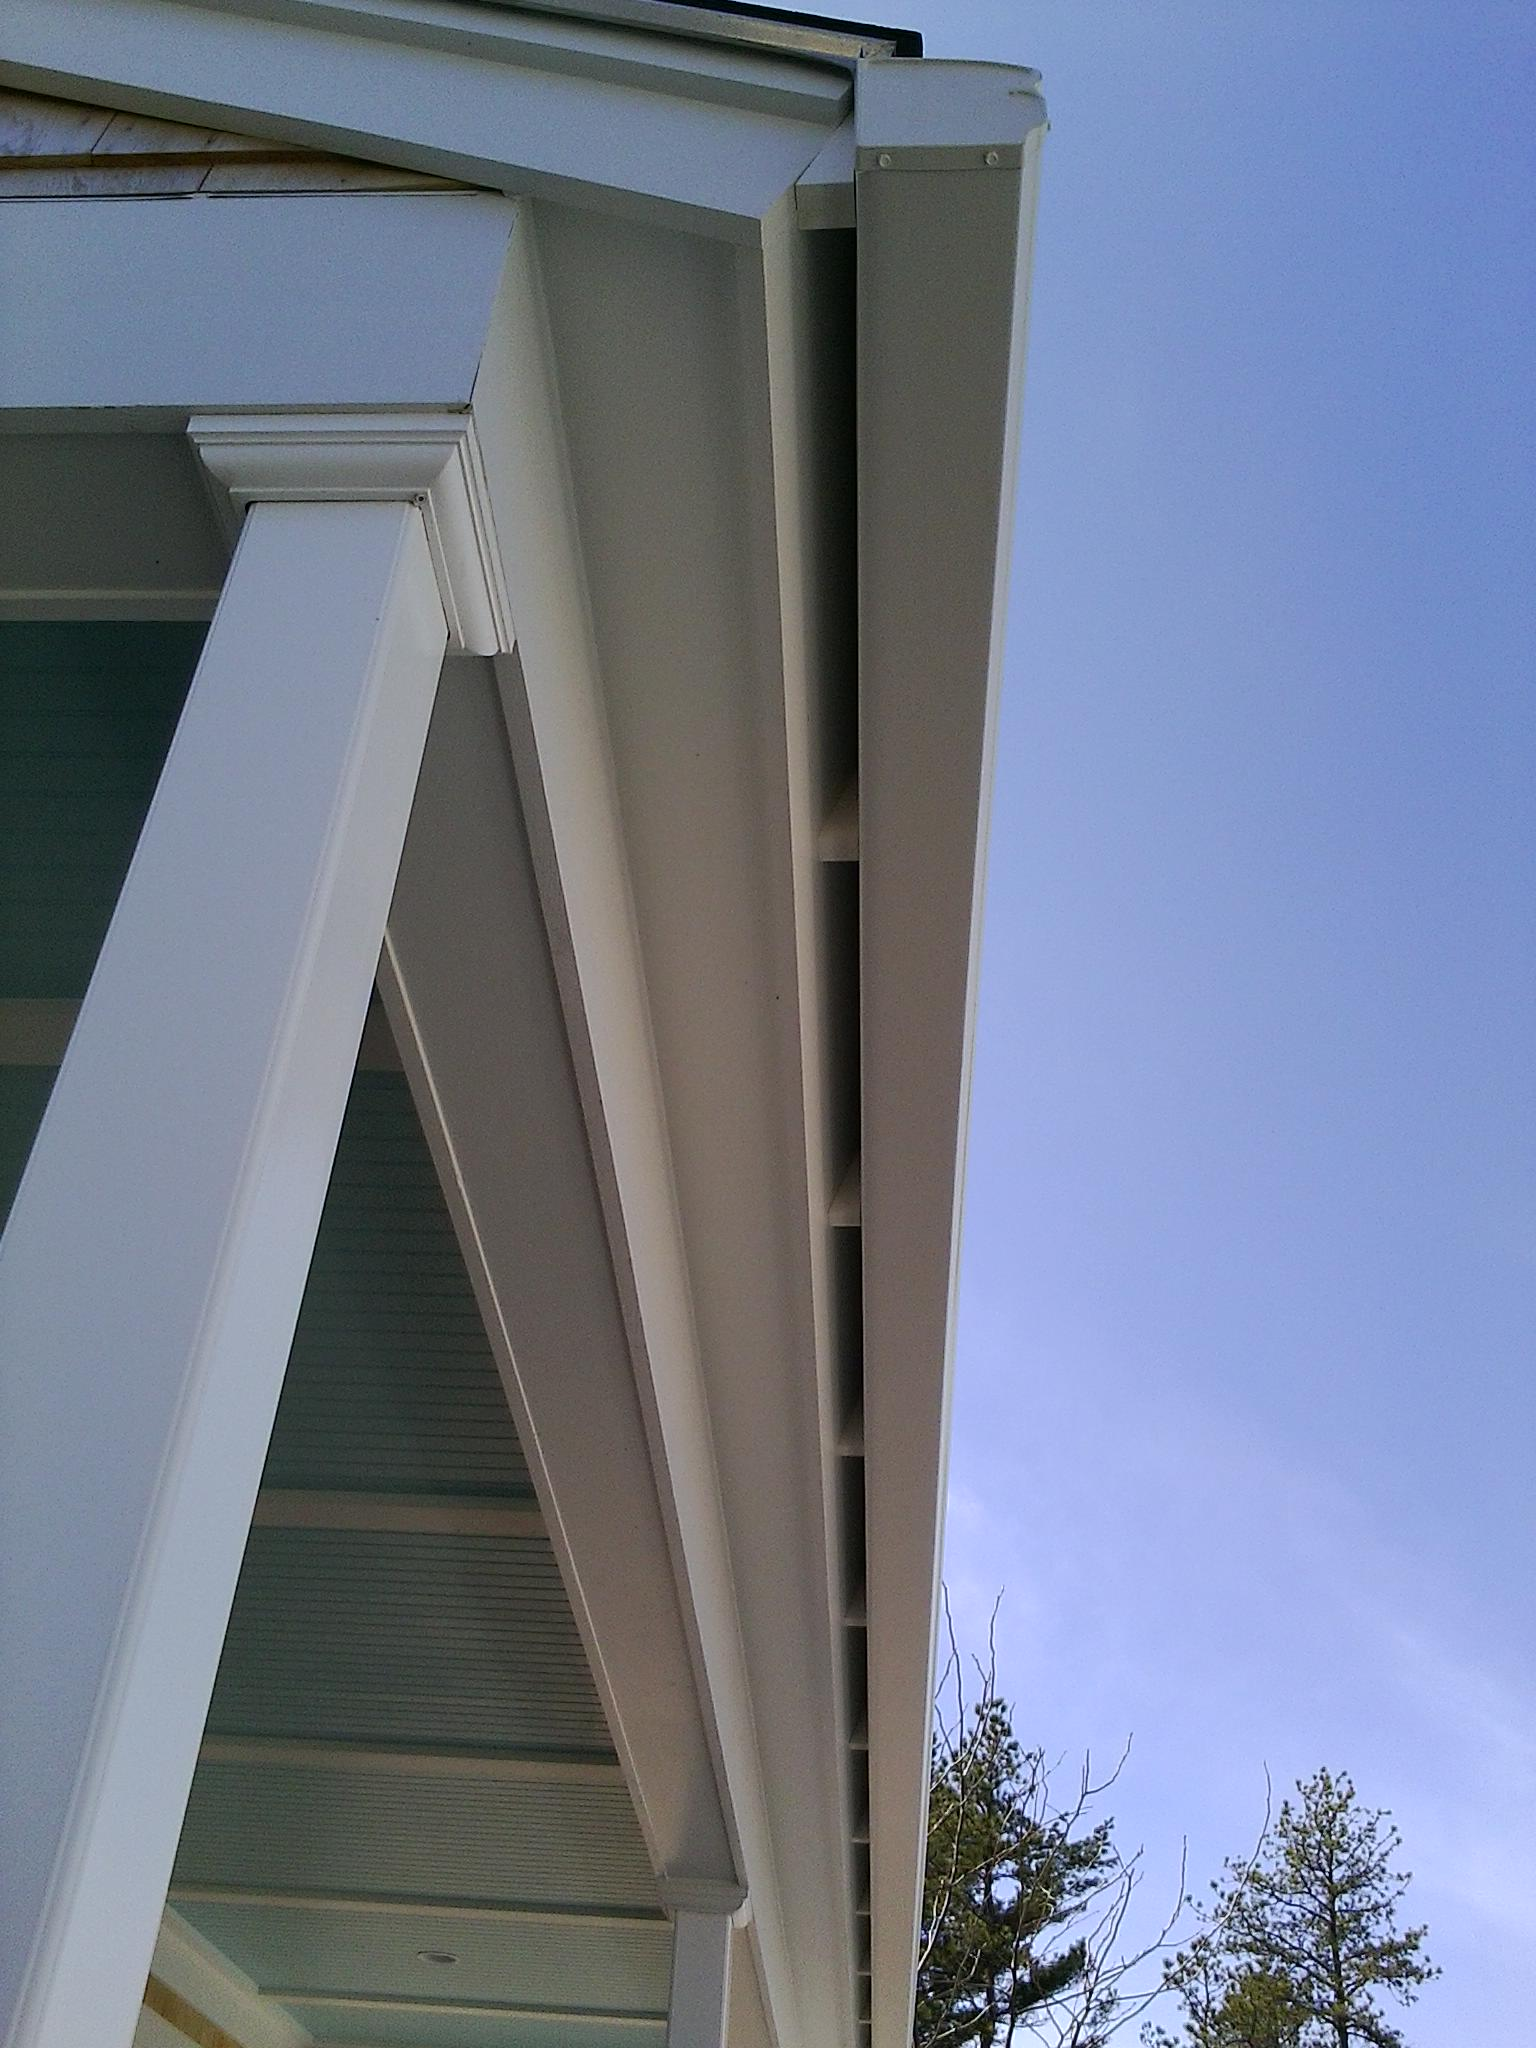 Gutter information gutter pro on the job in massachusetts and leafguard gutter on angled fascia solutioingenieria Image collections